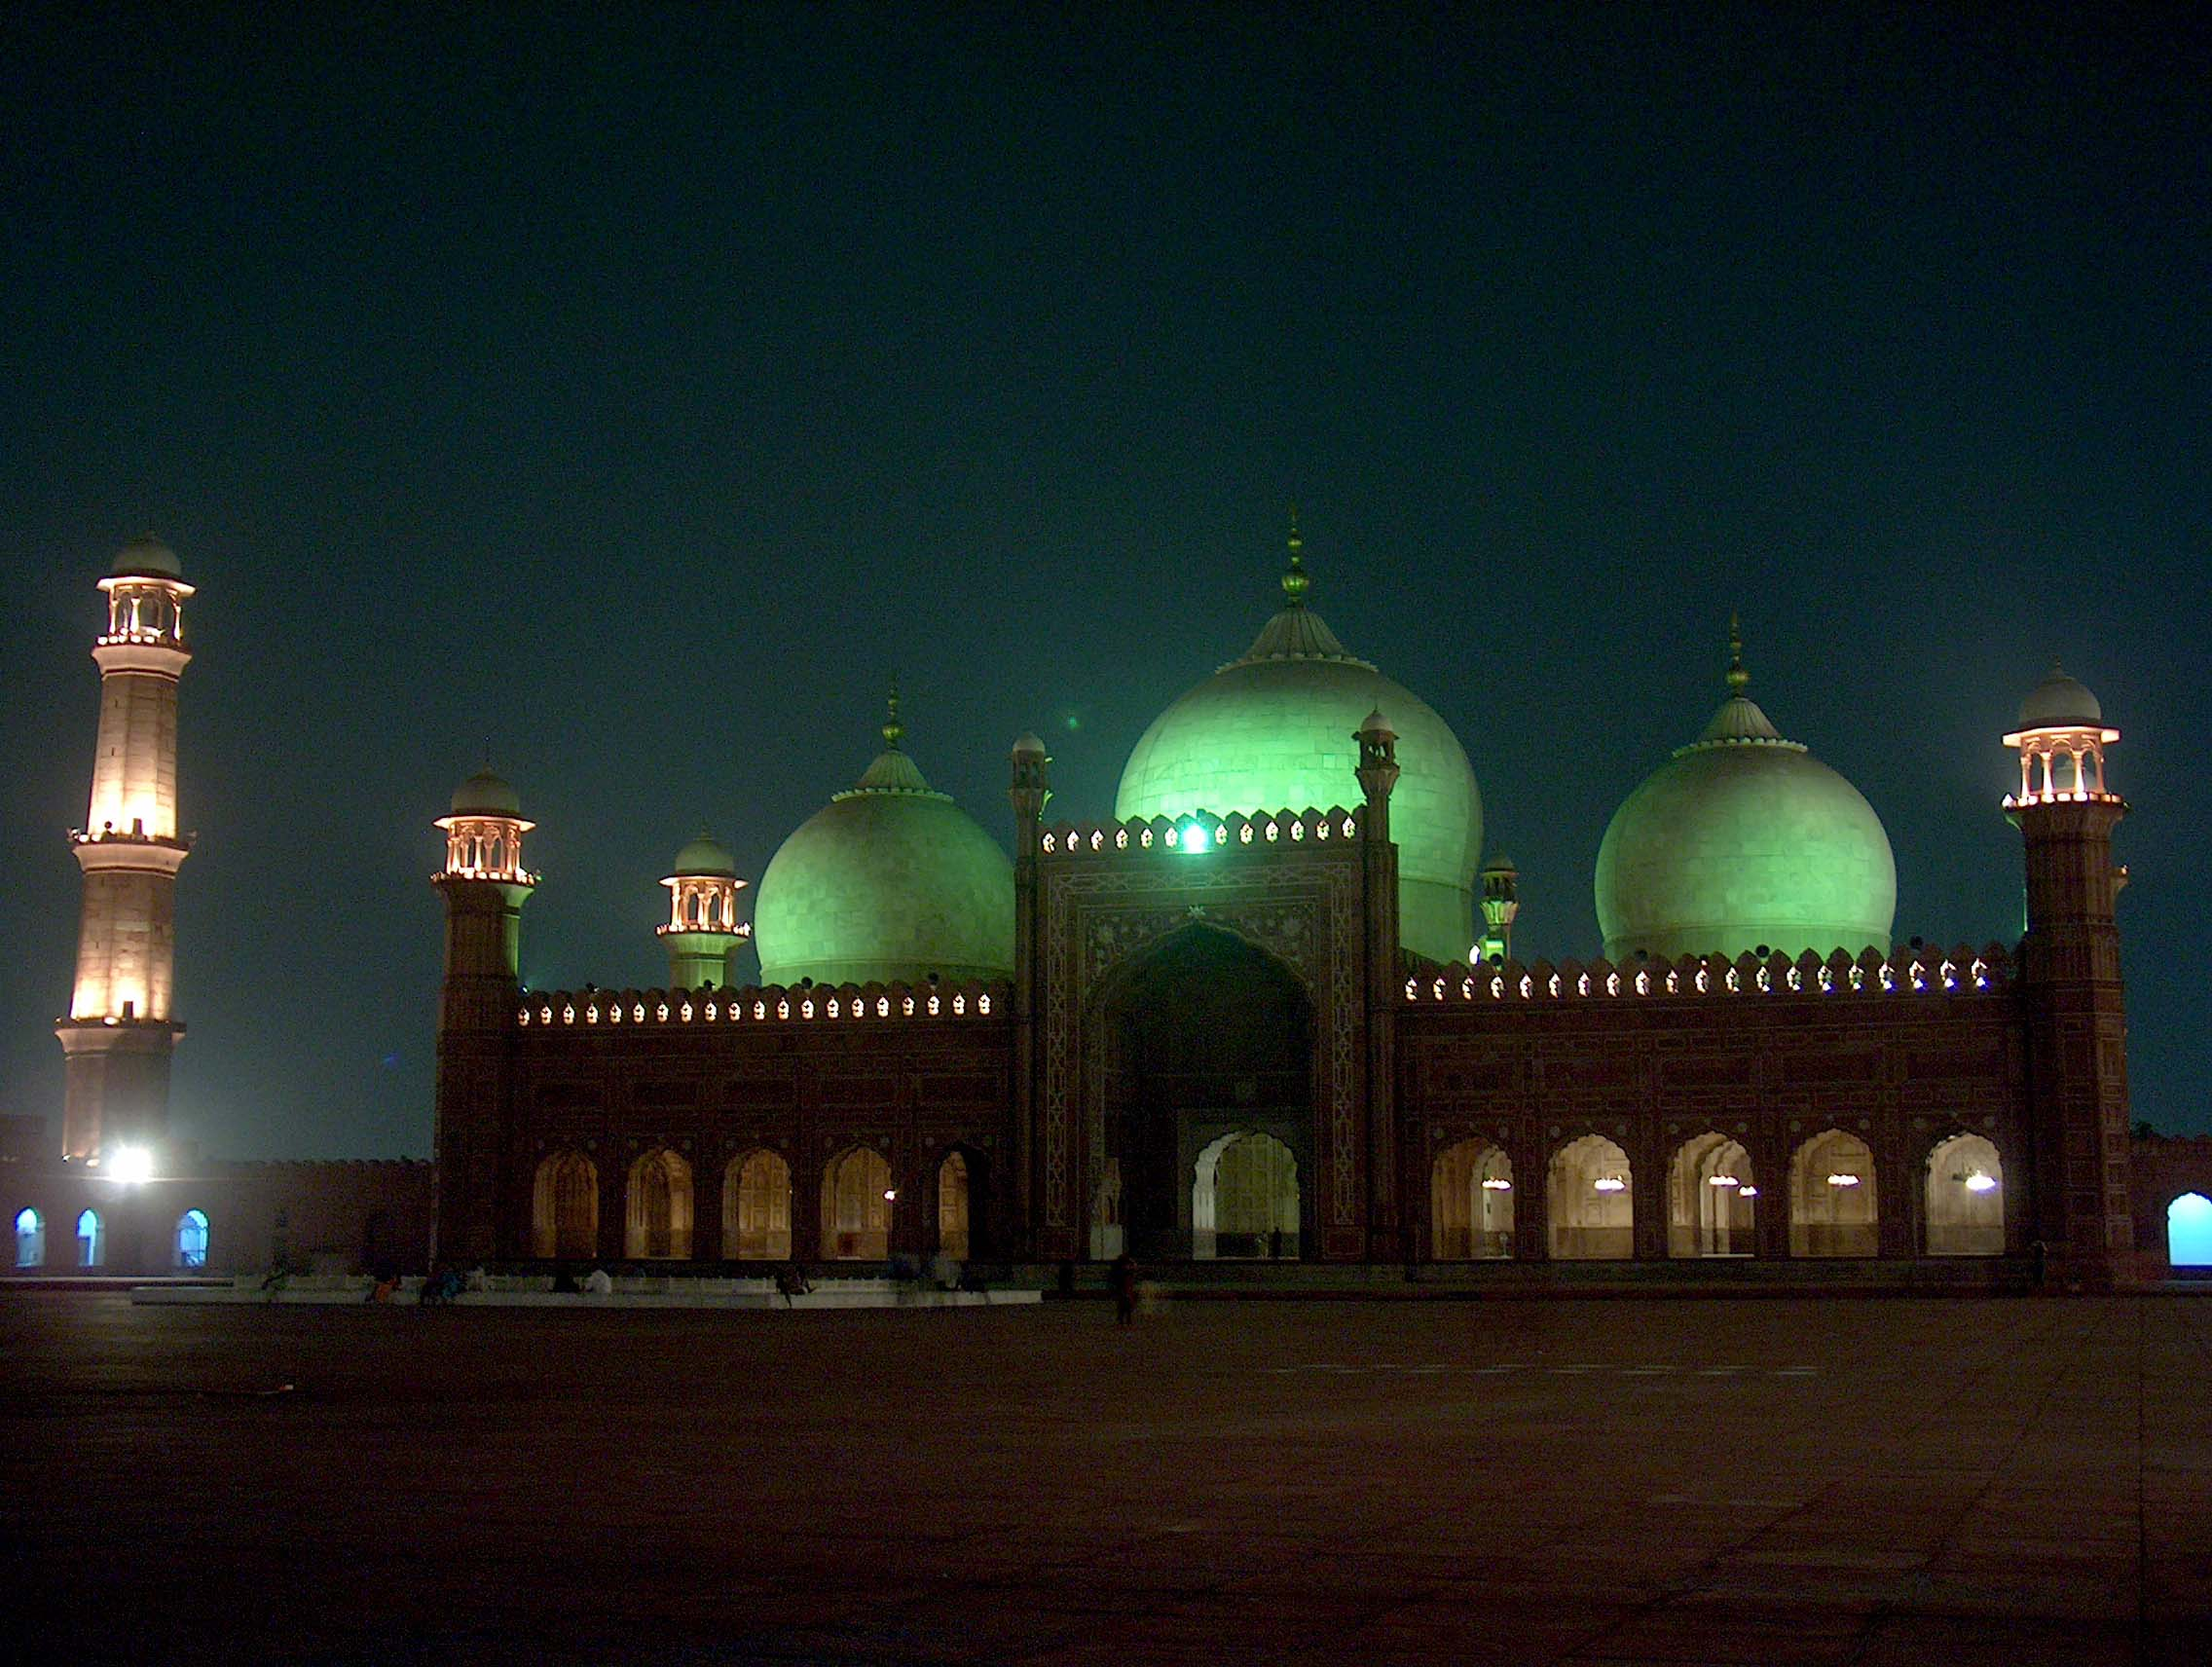 The 17th century Badshahi Mosque built by Mugh...